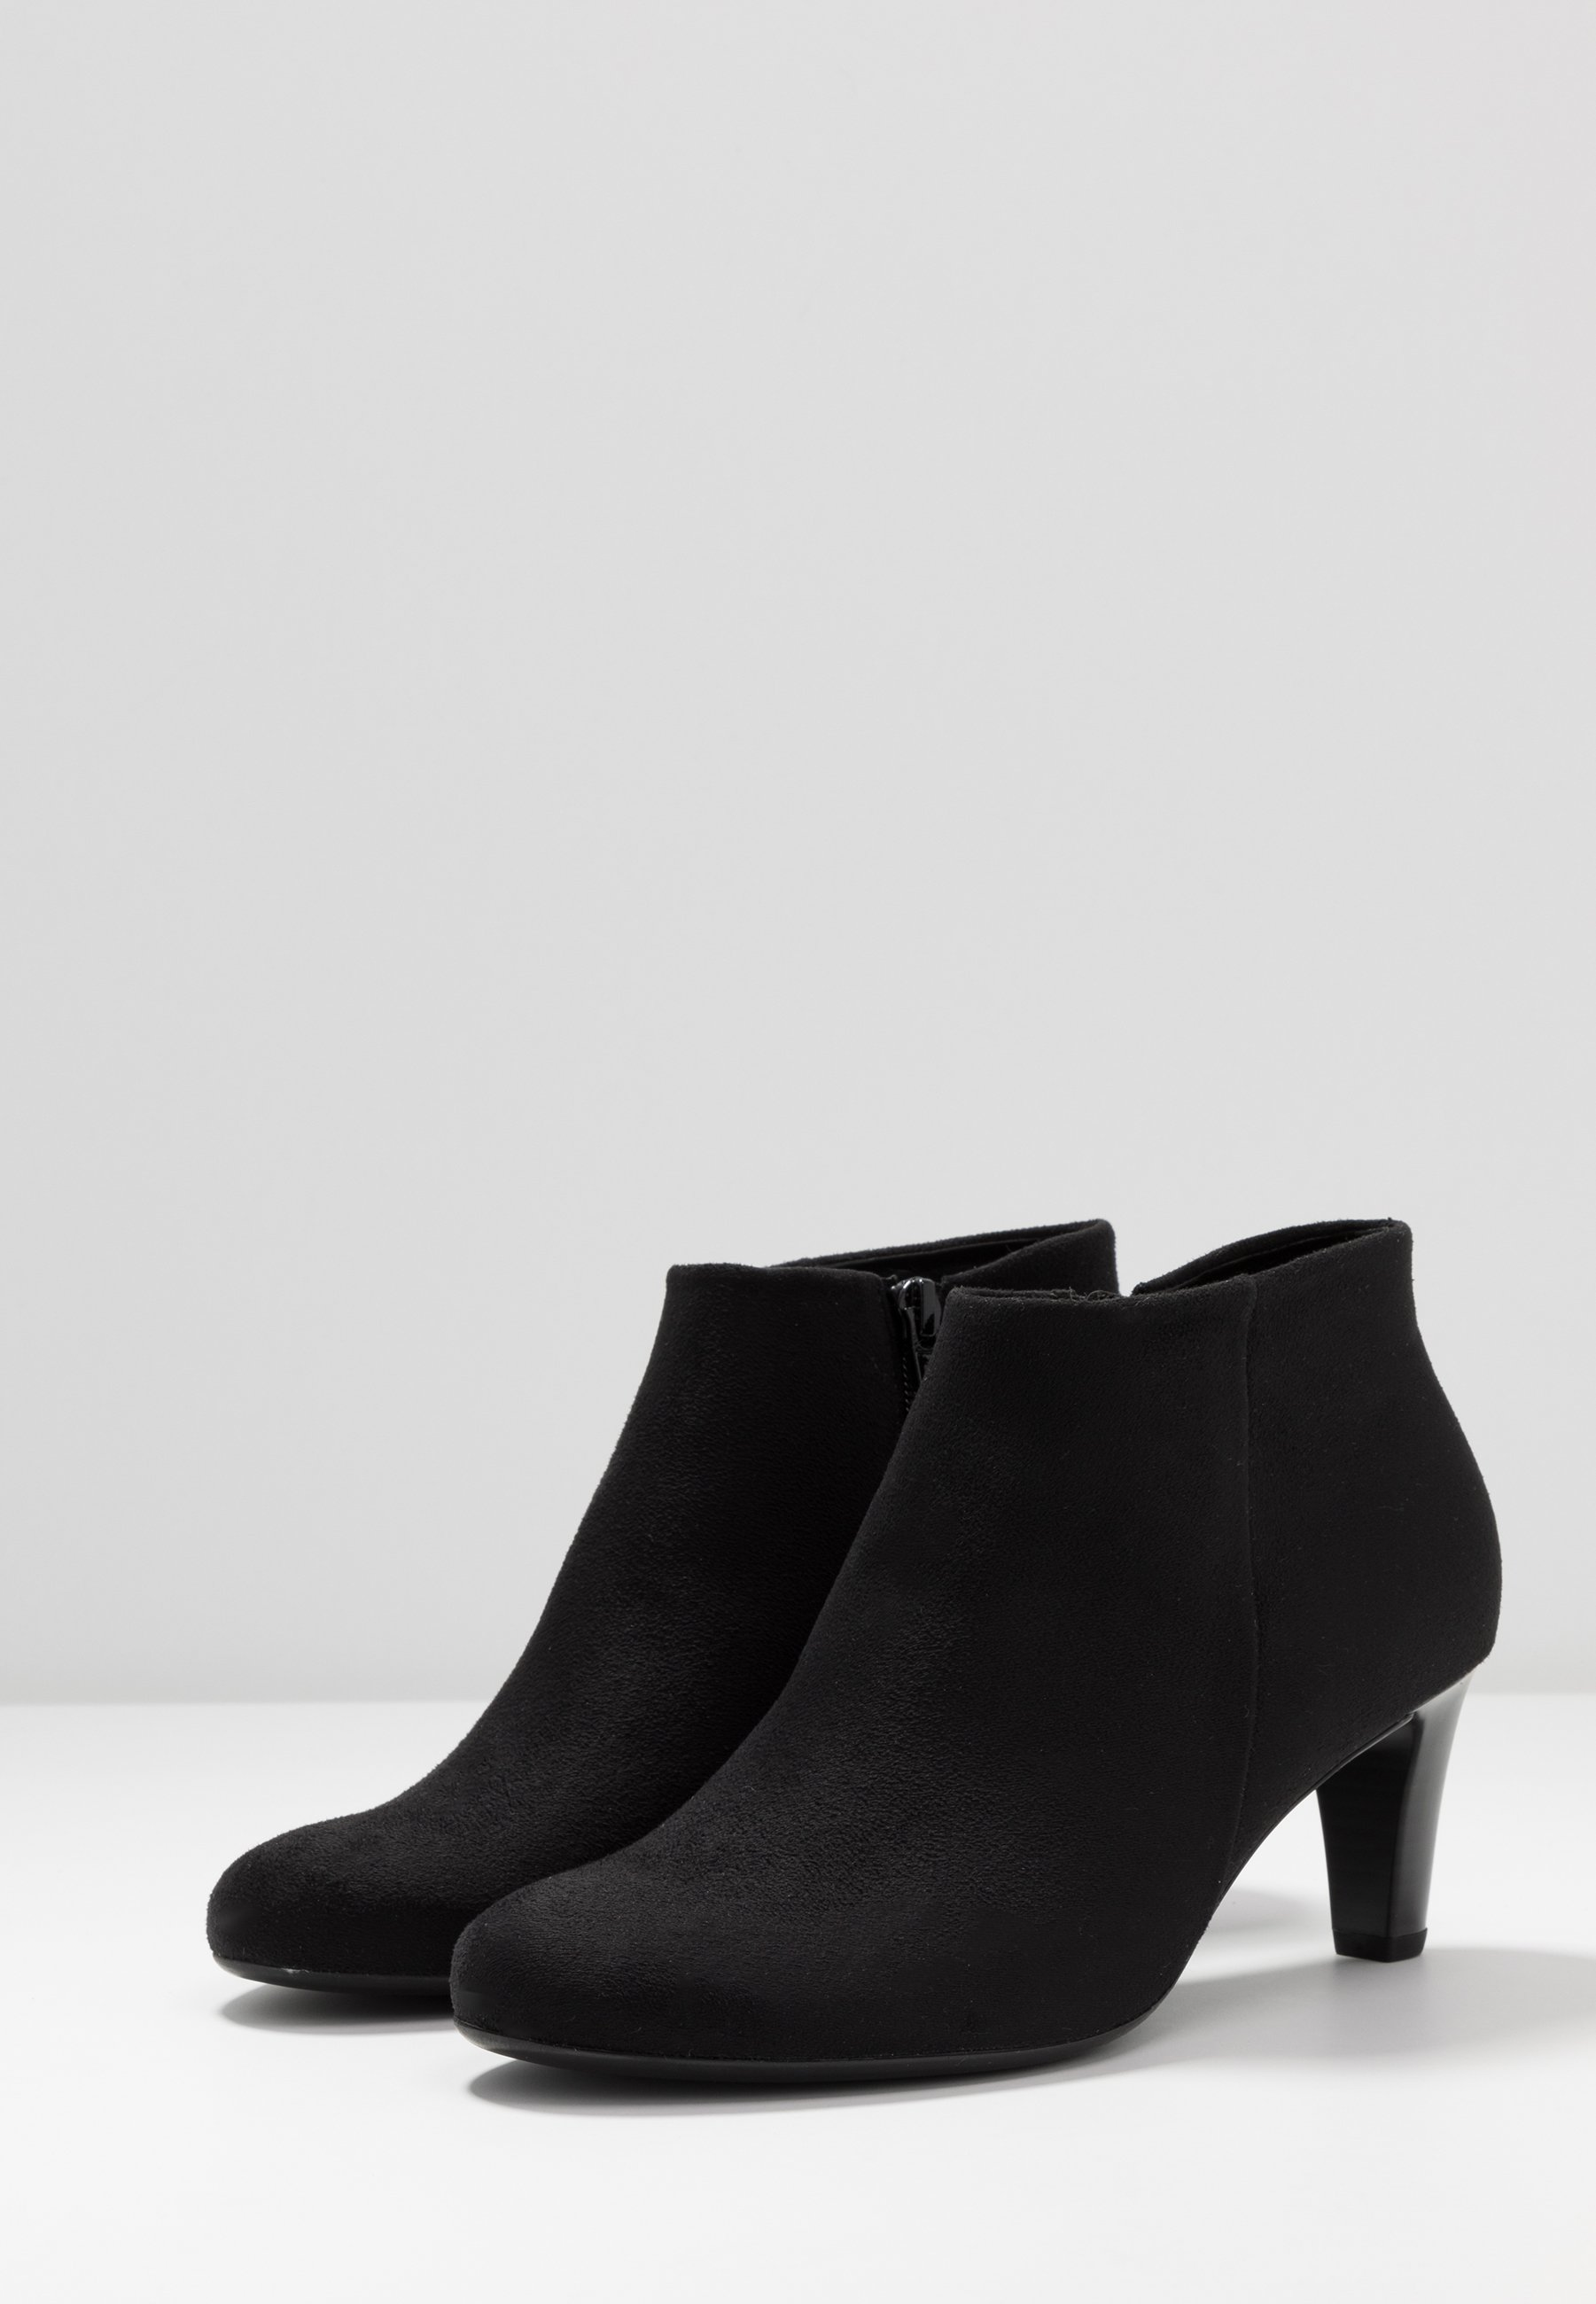 Cheapest Online Cheapest Women's Shoes Gabor Ankle boots schwarz OLDbsKS7y tcGvMv93I